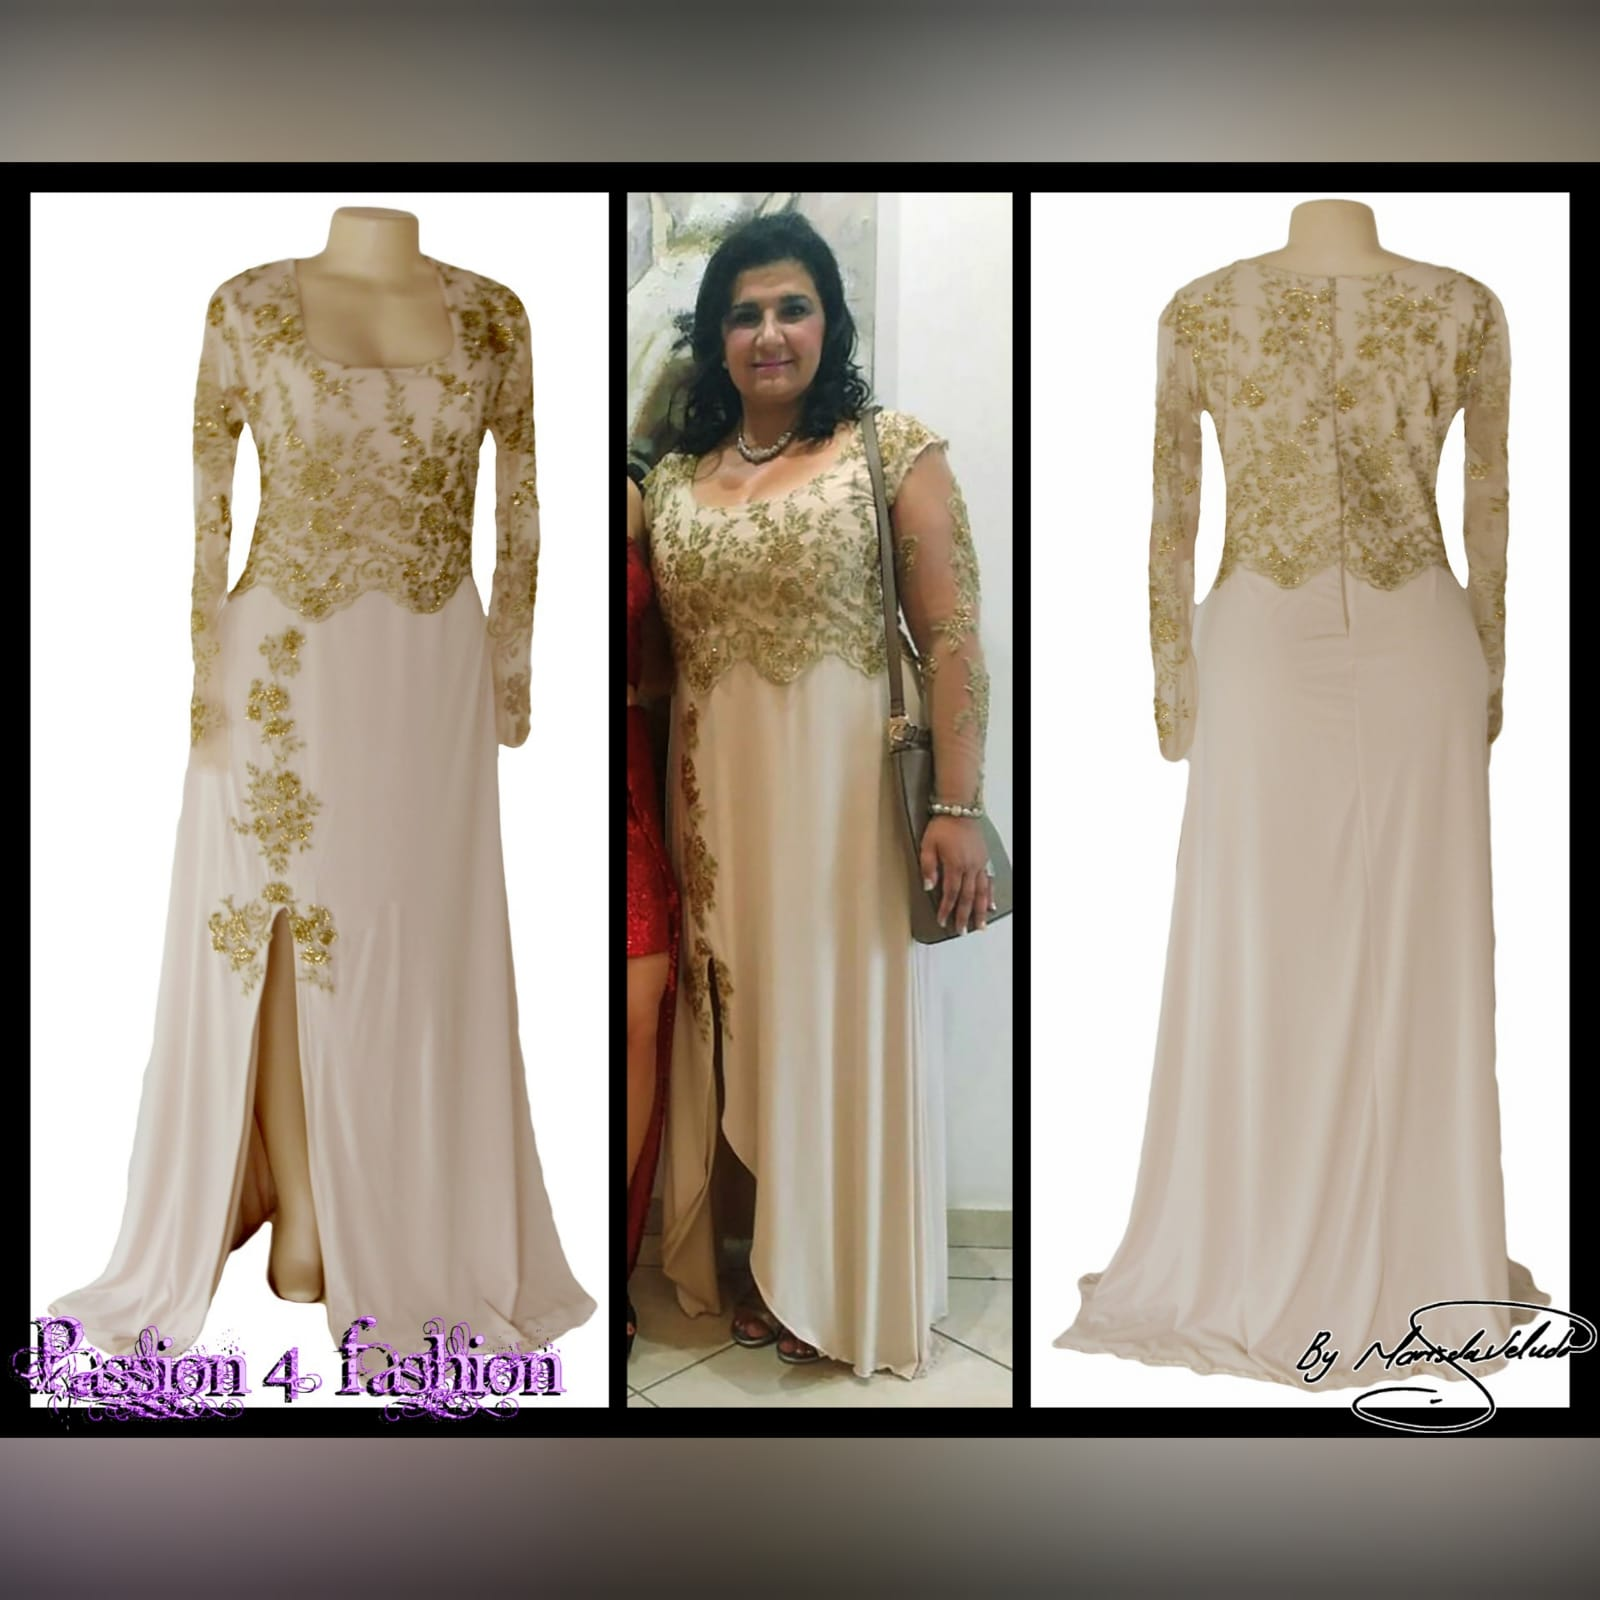 Nude and gold long evening dress 4 nude and gold long evening dress. Bodice detailed with gold beaded lace with long she sleeves, with a slit